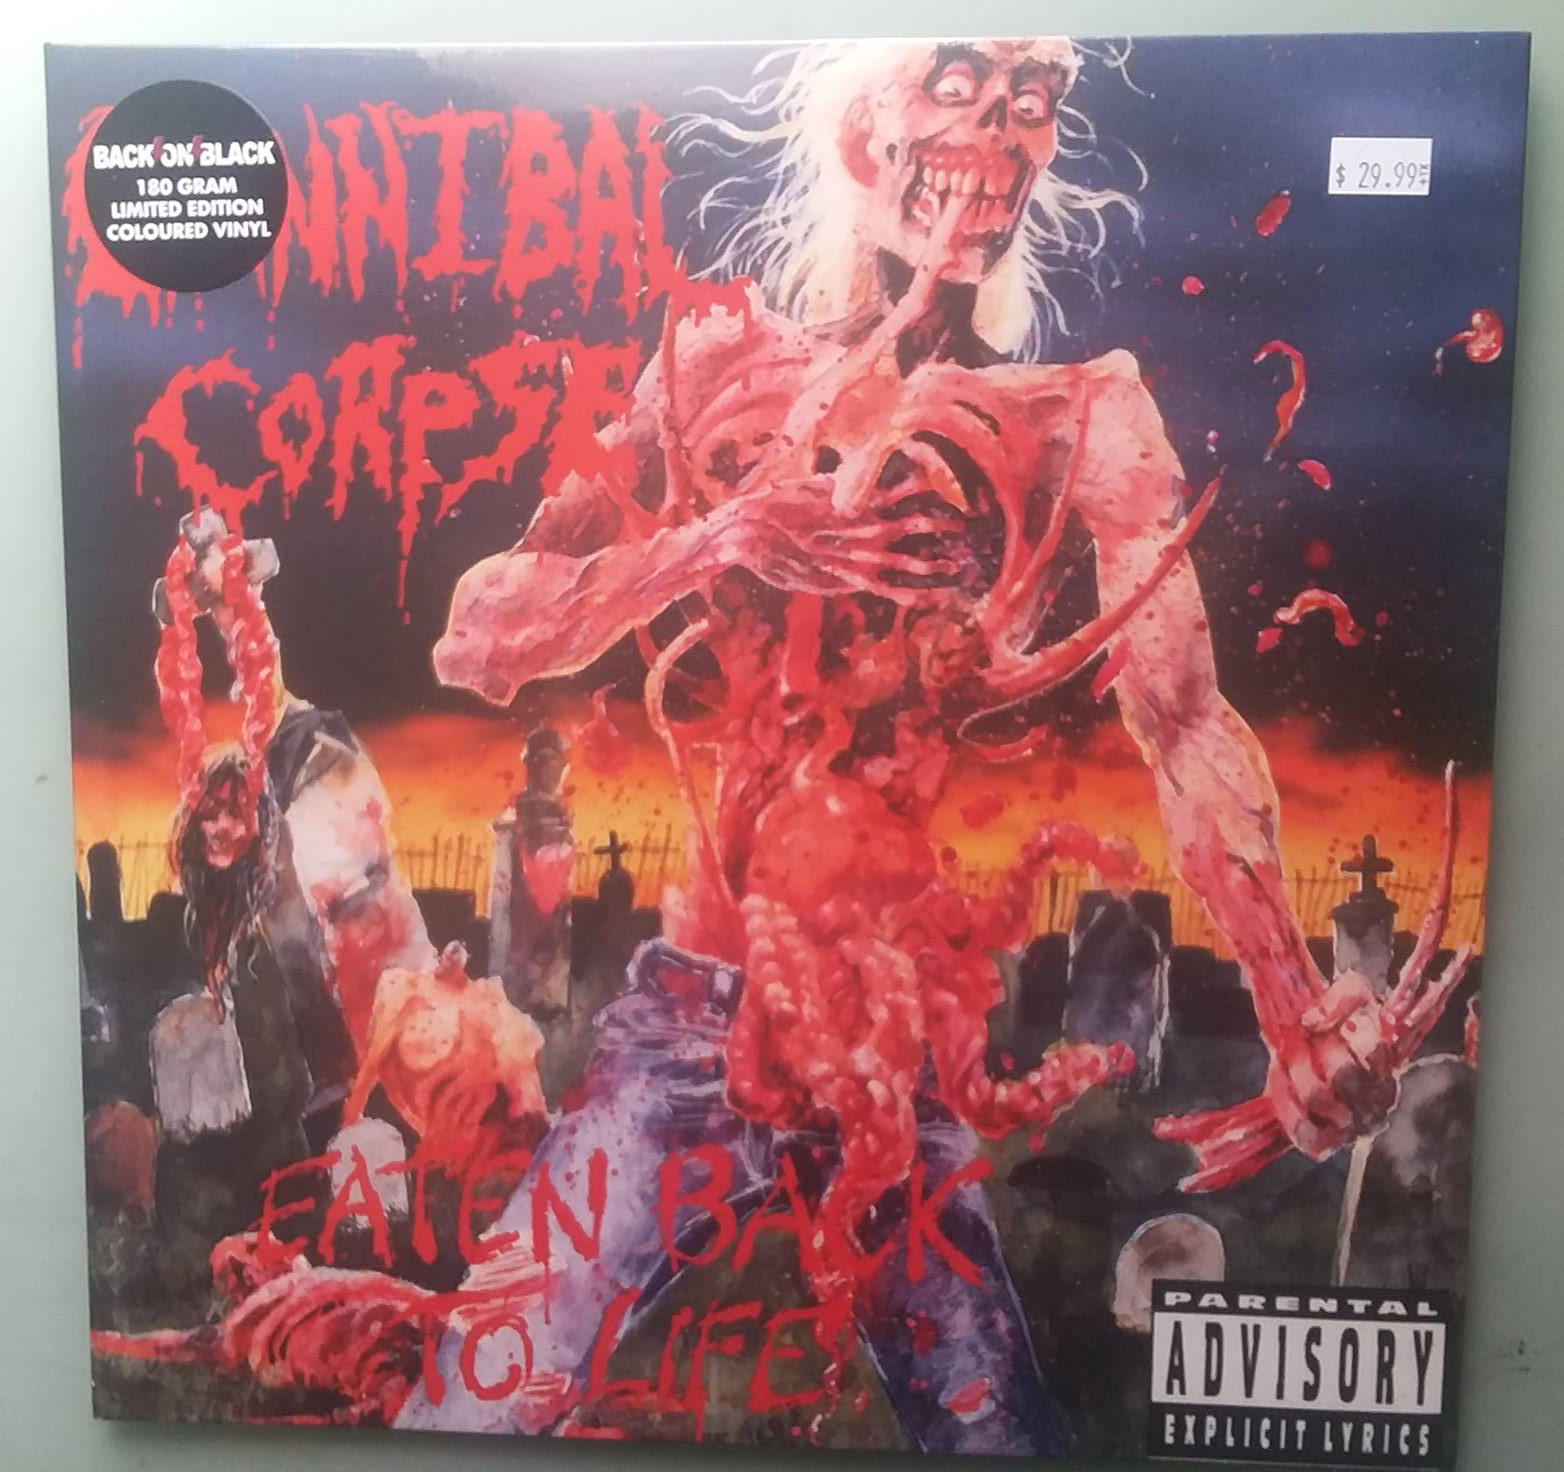 Cannibal Corpse - Eaten Back to Life LP (2010, Back on Black, Colored Vinyl)